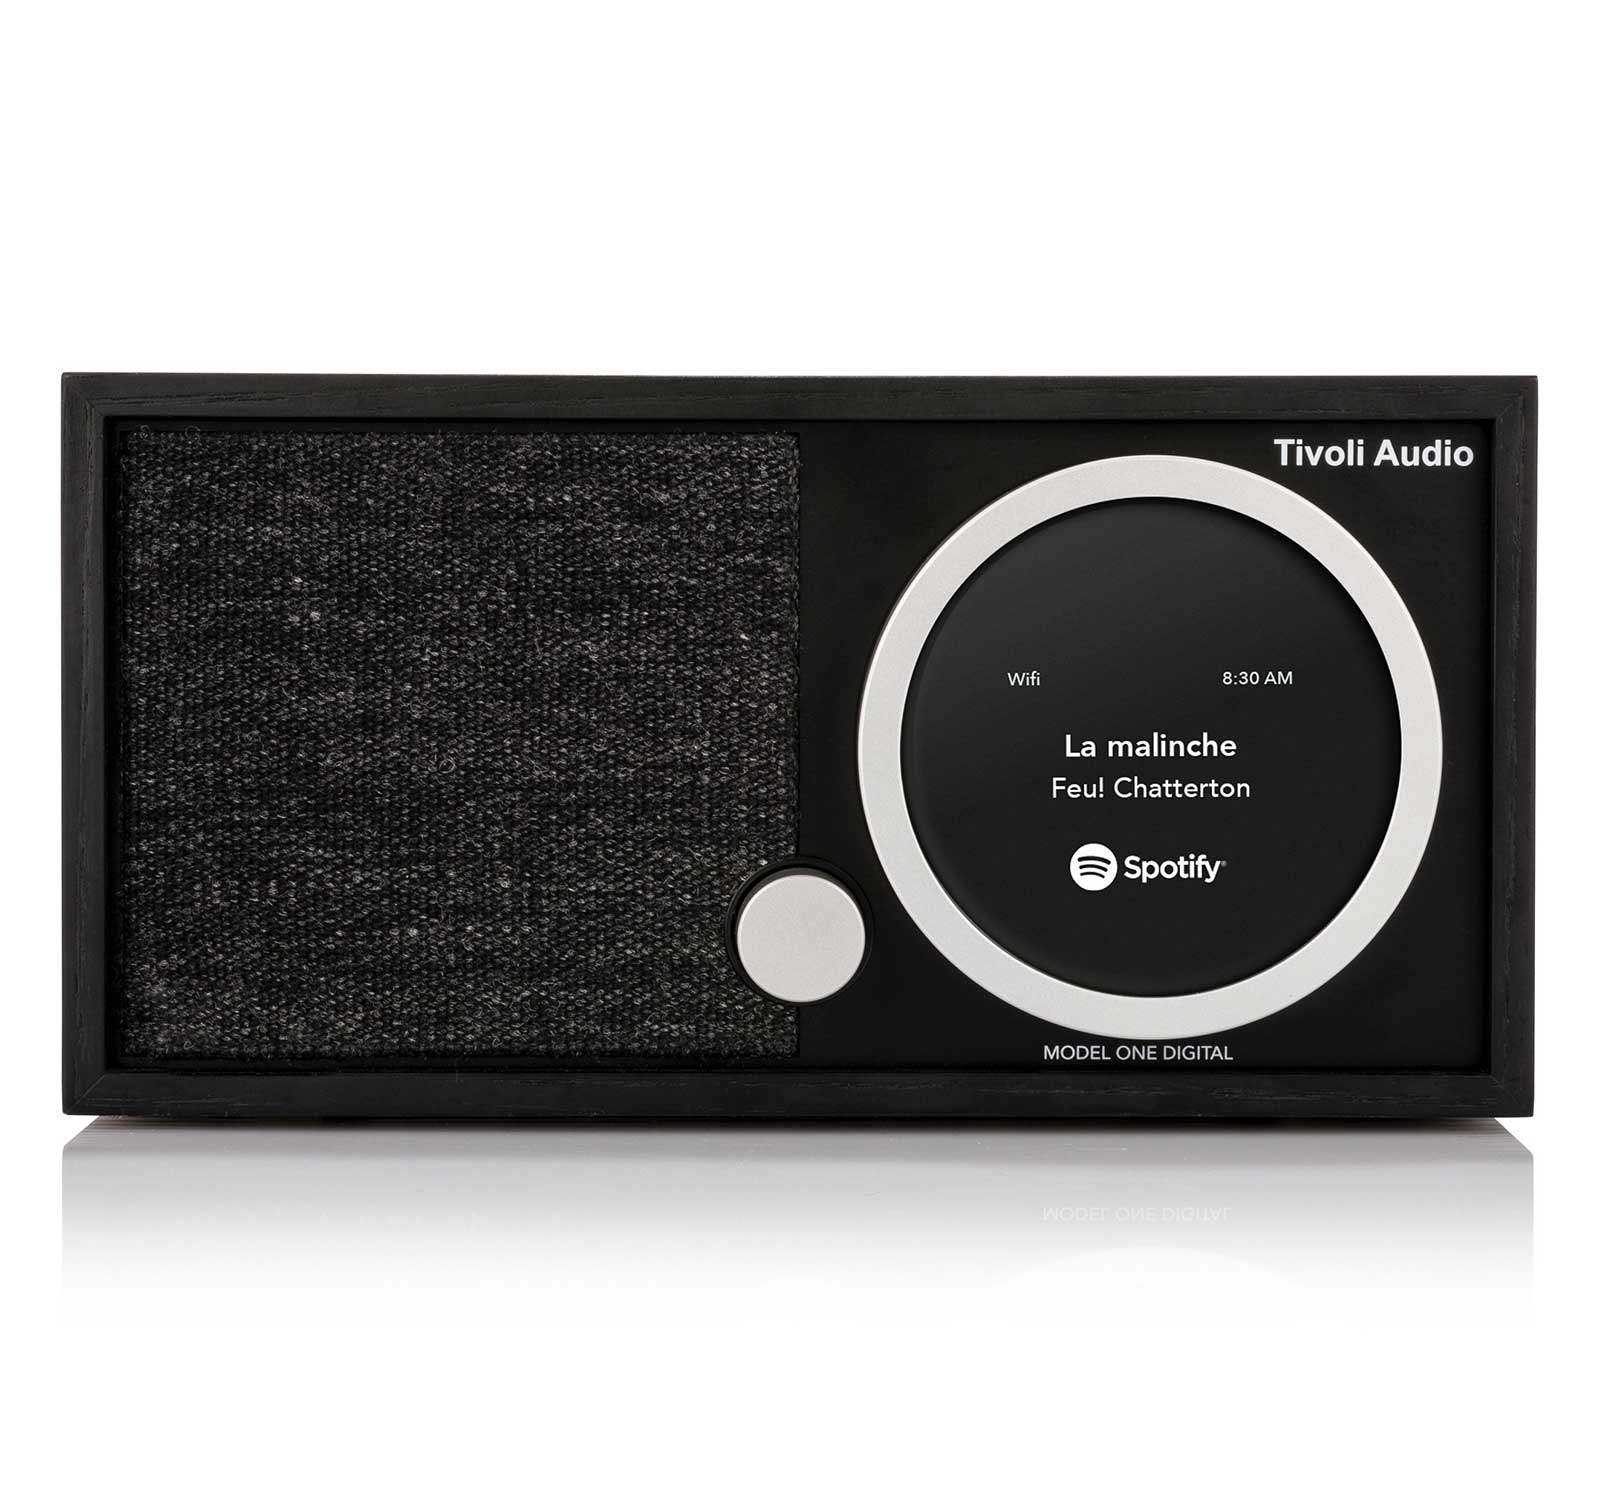 Tivoli Audio Model One Digital Black FM   Wi-Fi   Bluetooth   Table radio by Tivoli